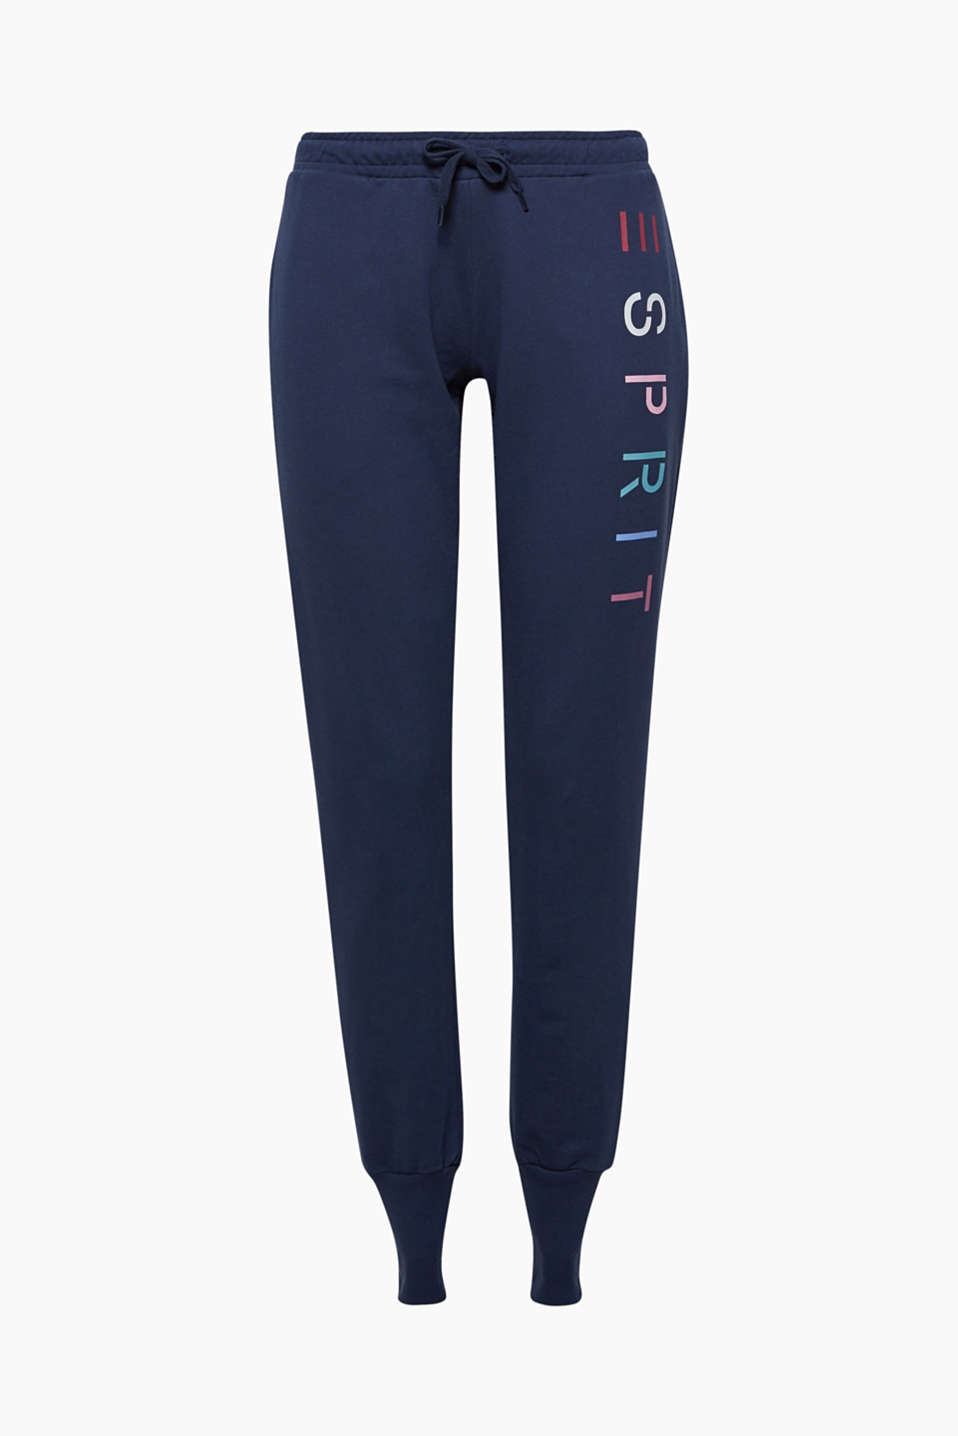 These light sweatshirt trousers go with any activewear tops and, thanks to the colourful logo prints, are a sporty classic!